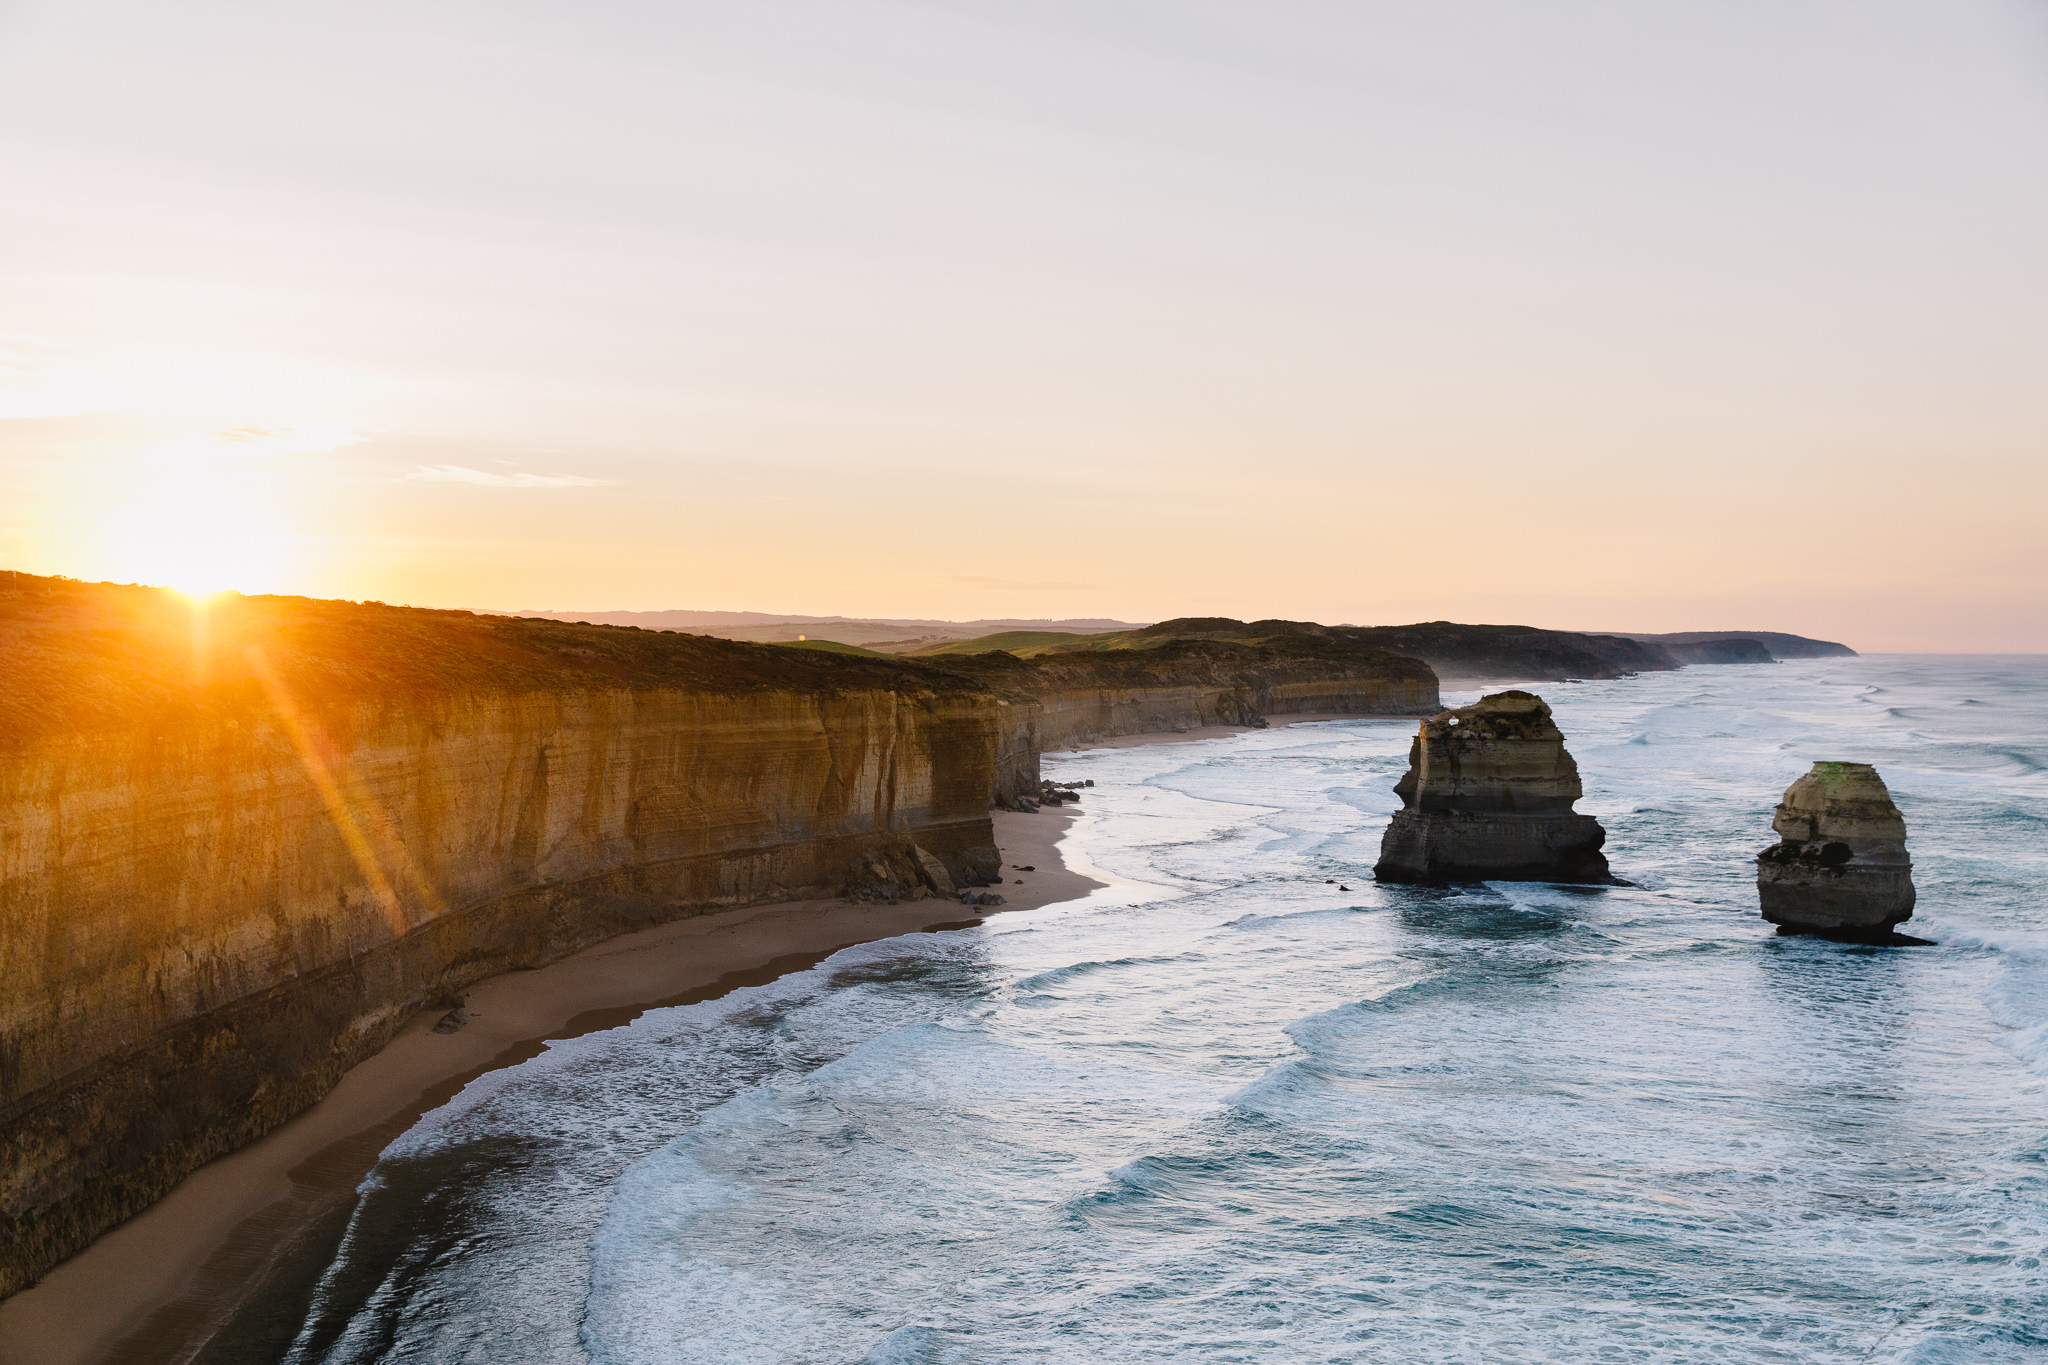 Sunrise at the Twelve Apostles on the Great Ocean Road in Australia